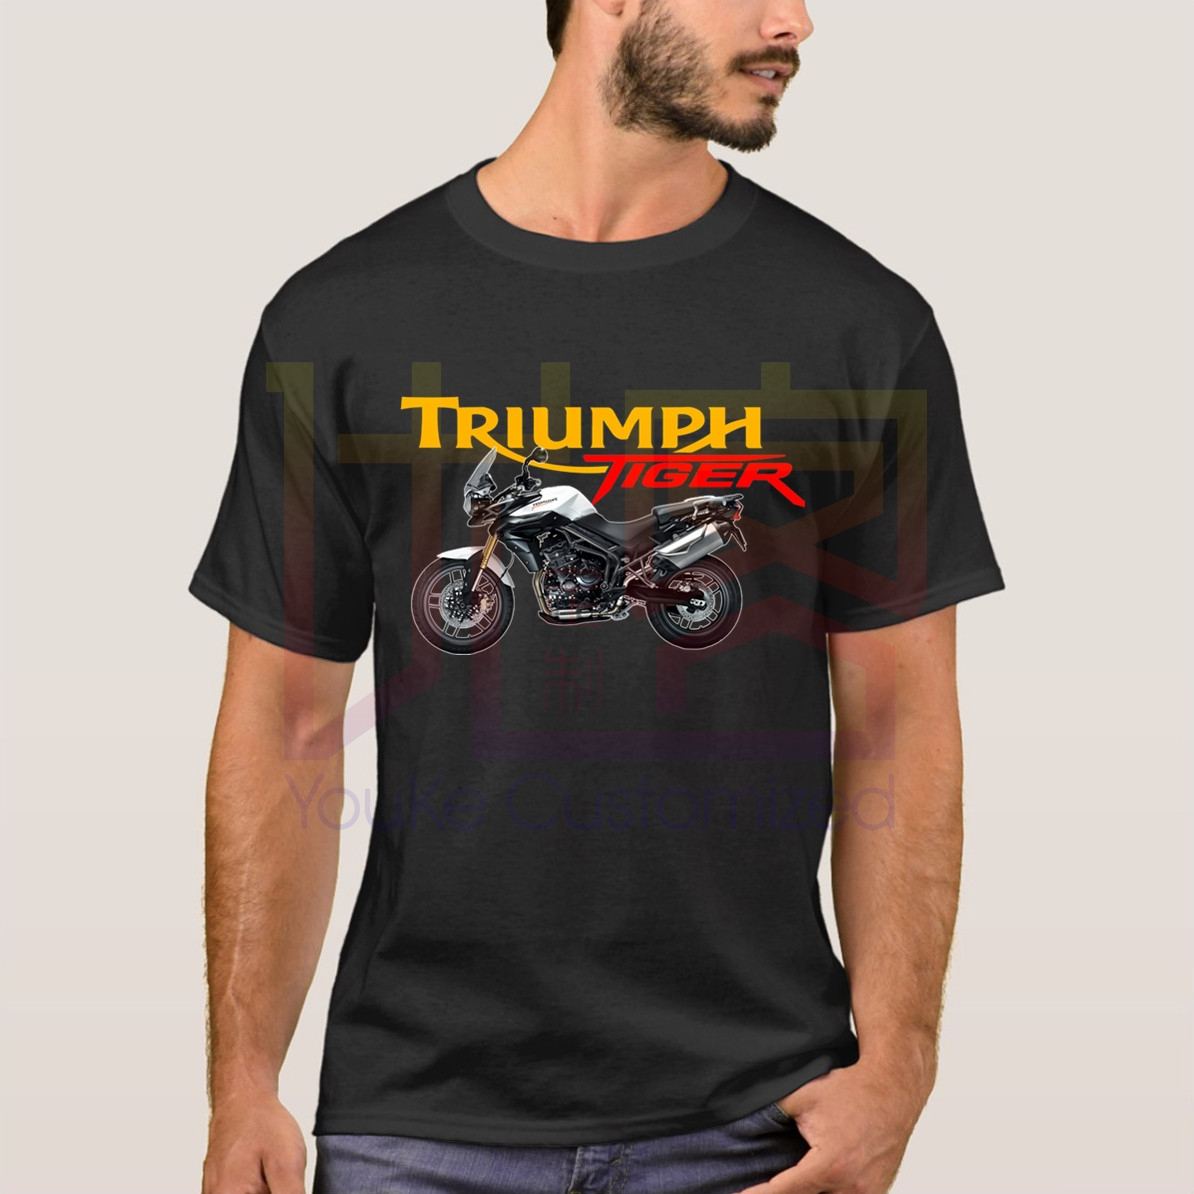 Triumph Tiger T-Shirt Short Sleeve Men's T-Shirt 2019 Hot Leisure Big Size Cotton Crewneck Motor Men's Clothes